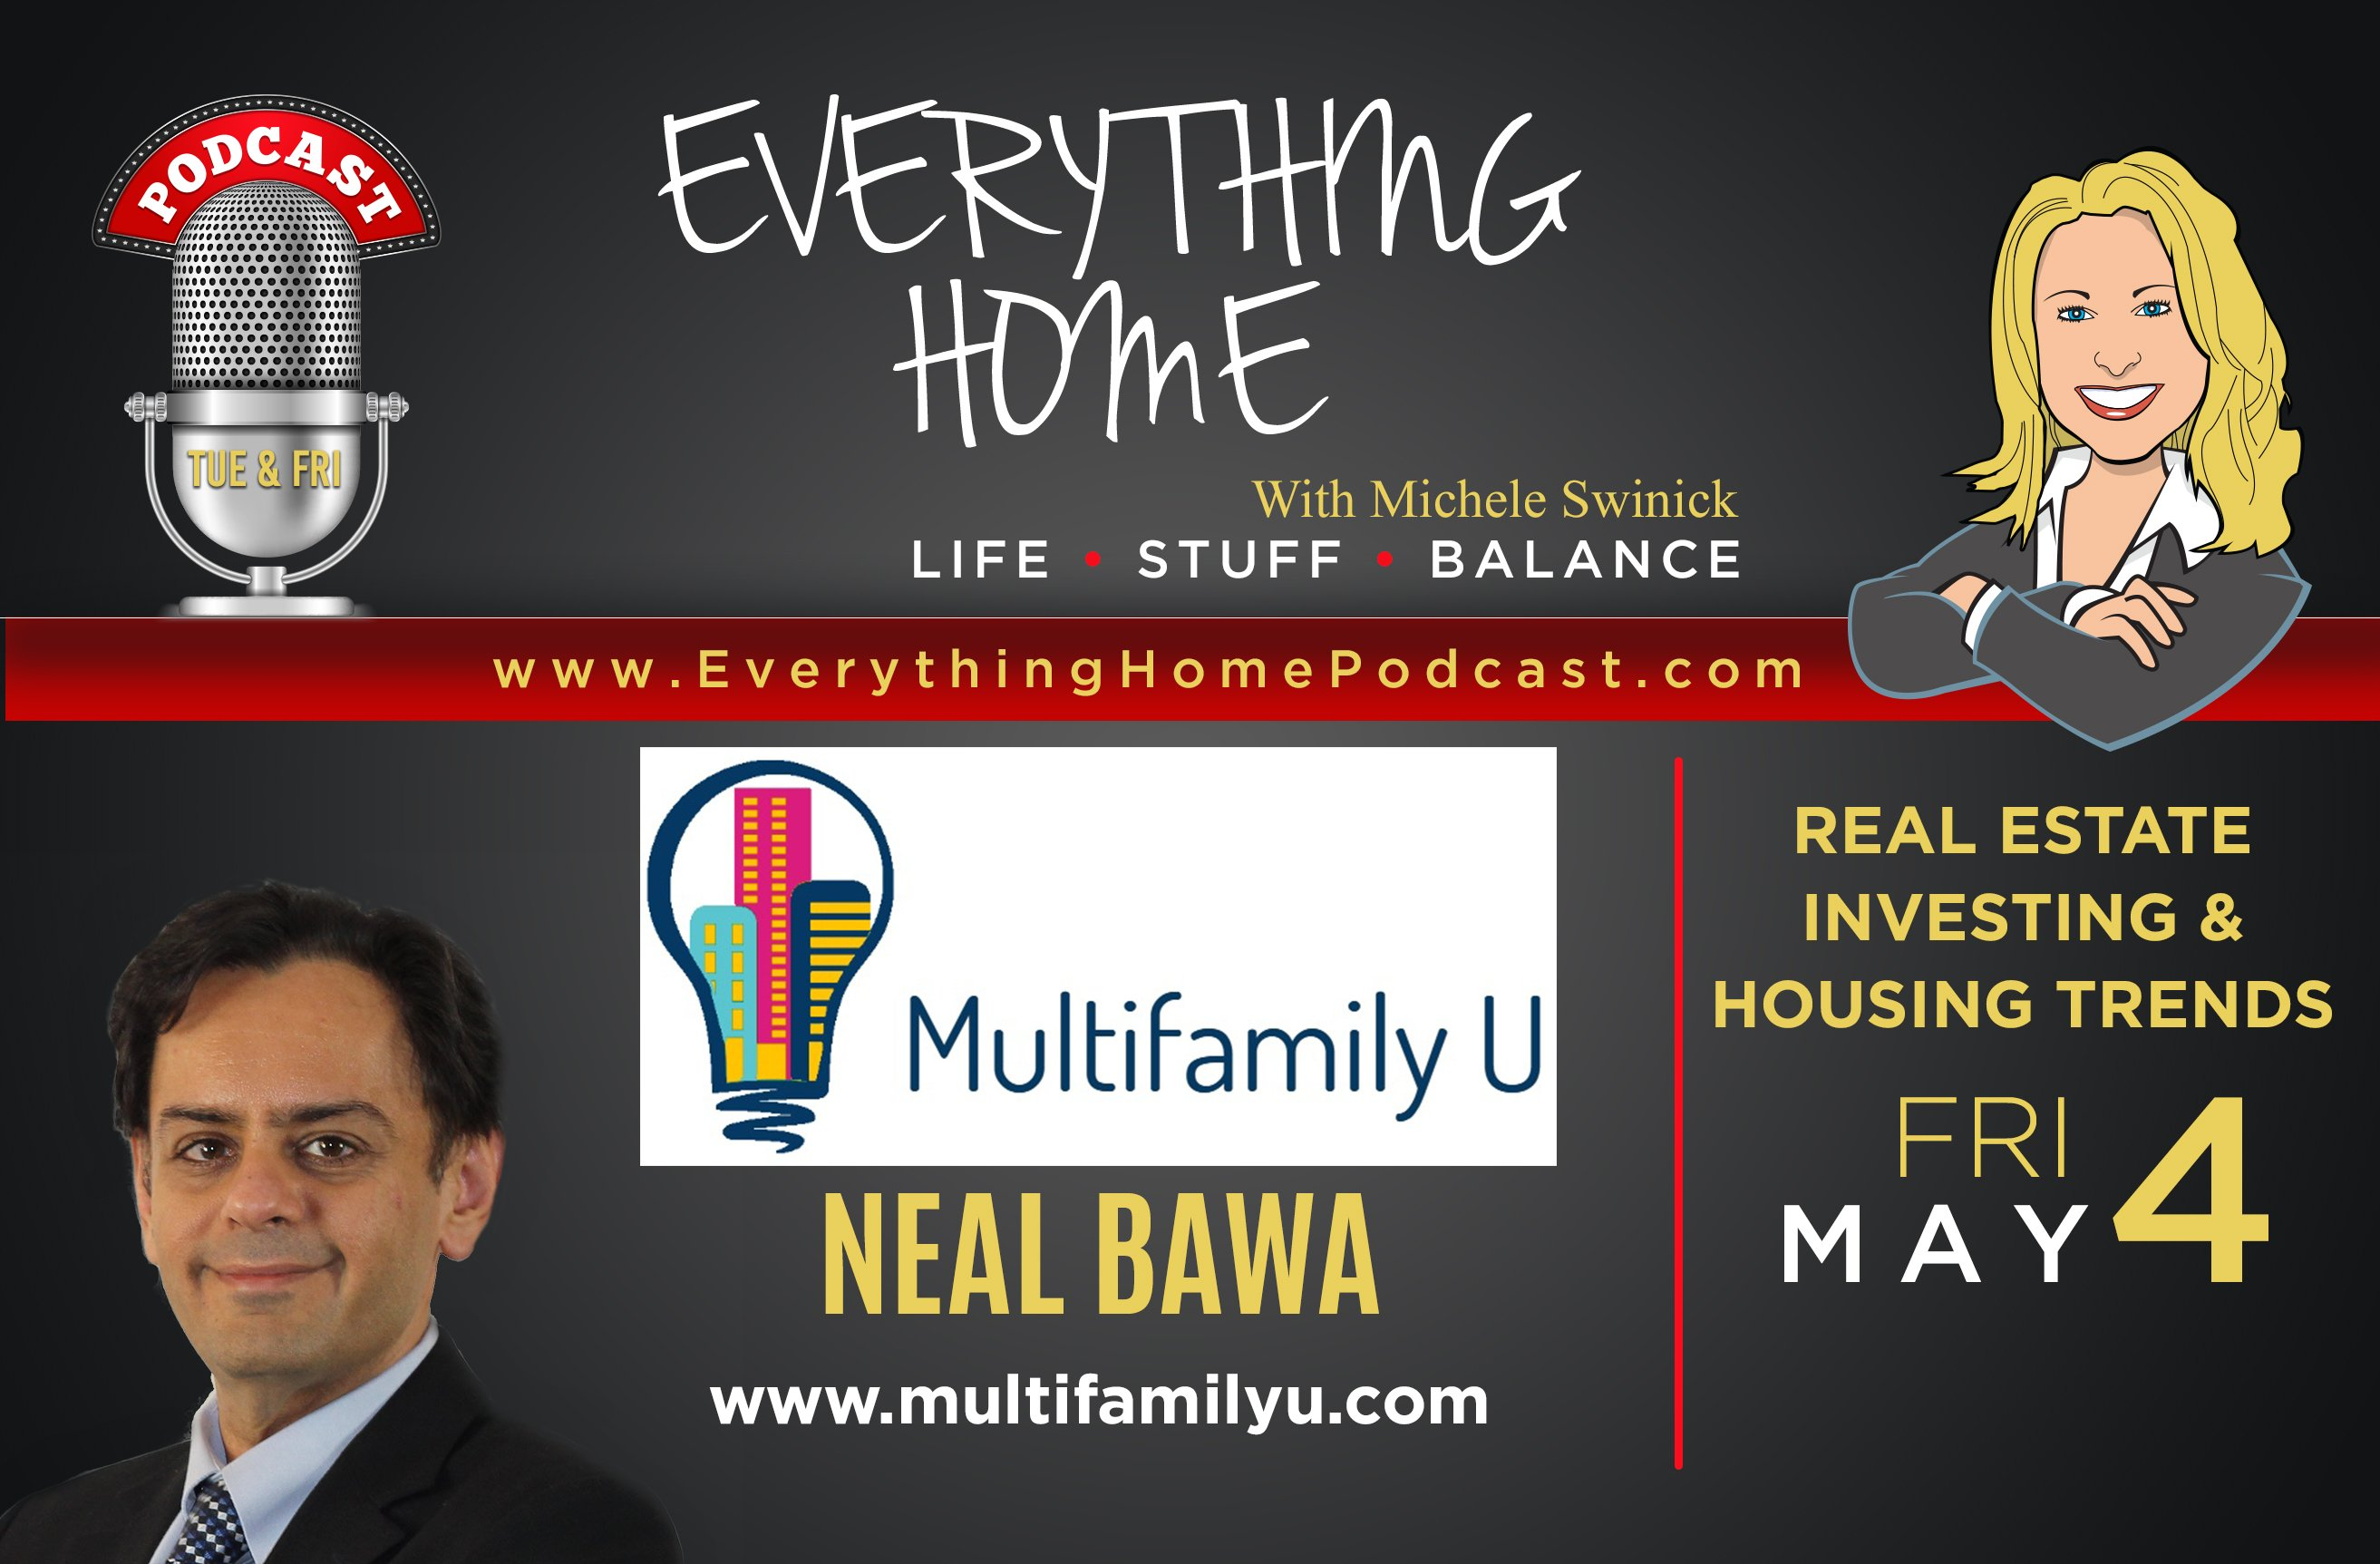 REAL ESTATE - MULTIFAMILY INVESTING